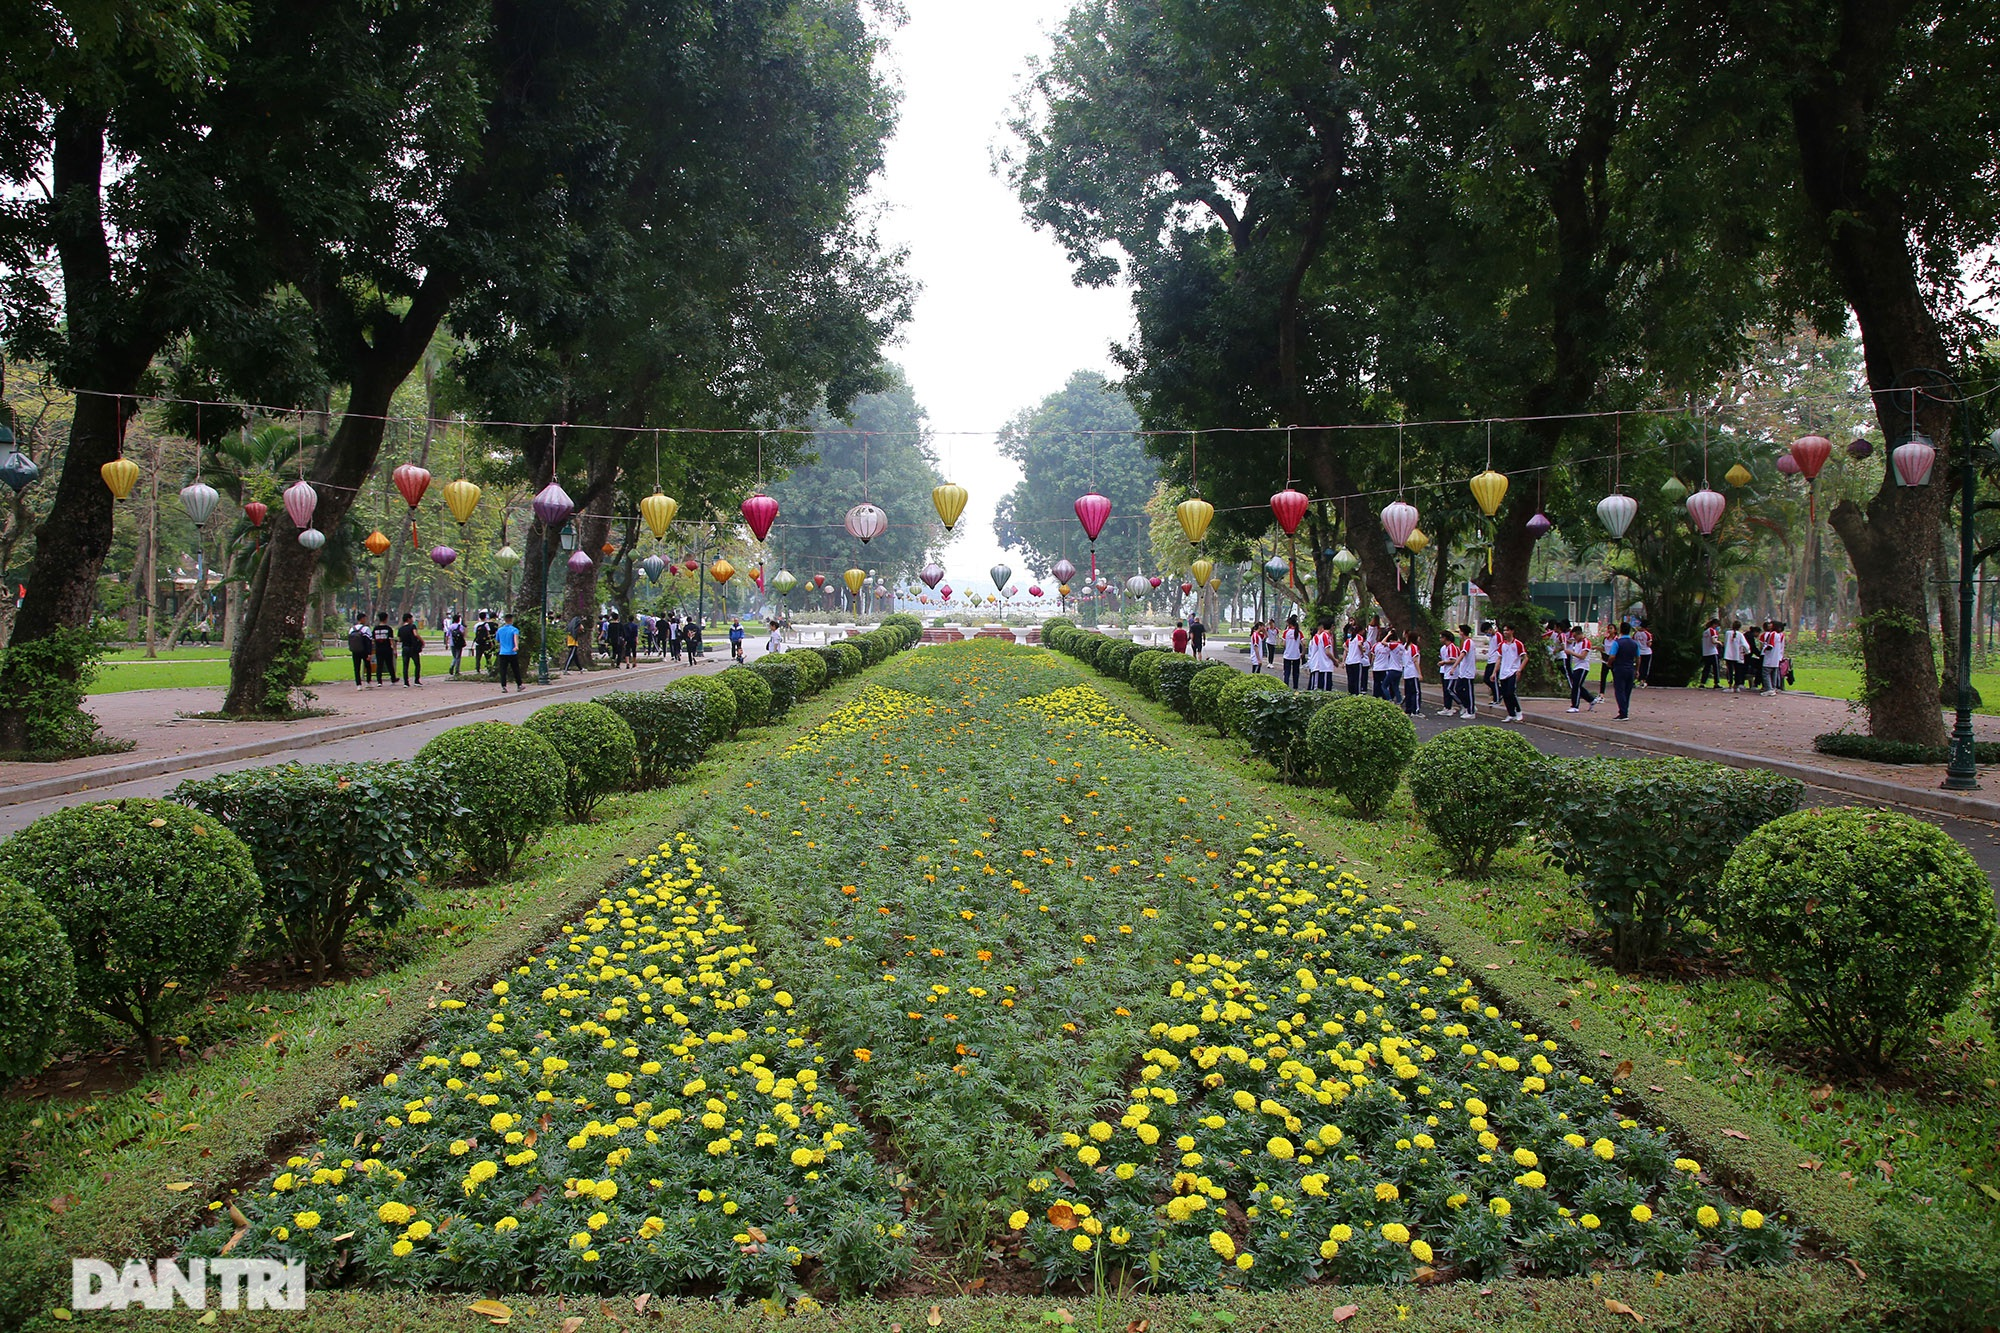 Little-known facts about the largest park in Hanoi about 60 years old - 2